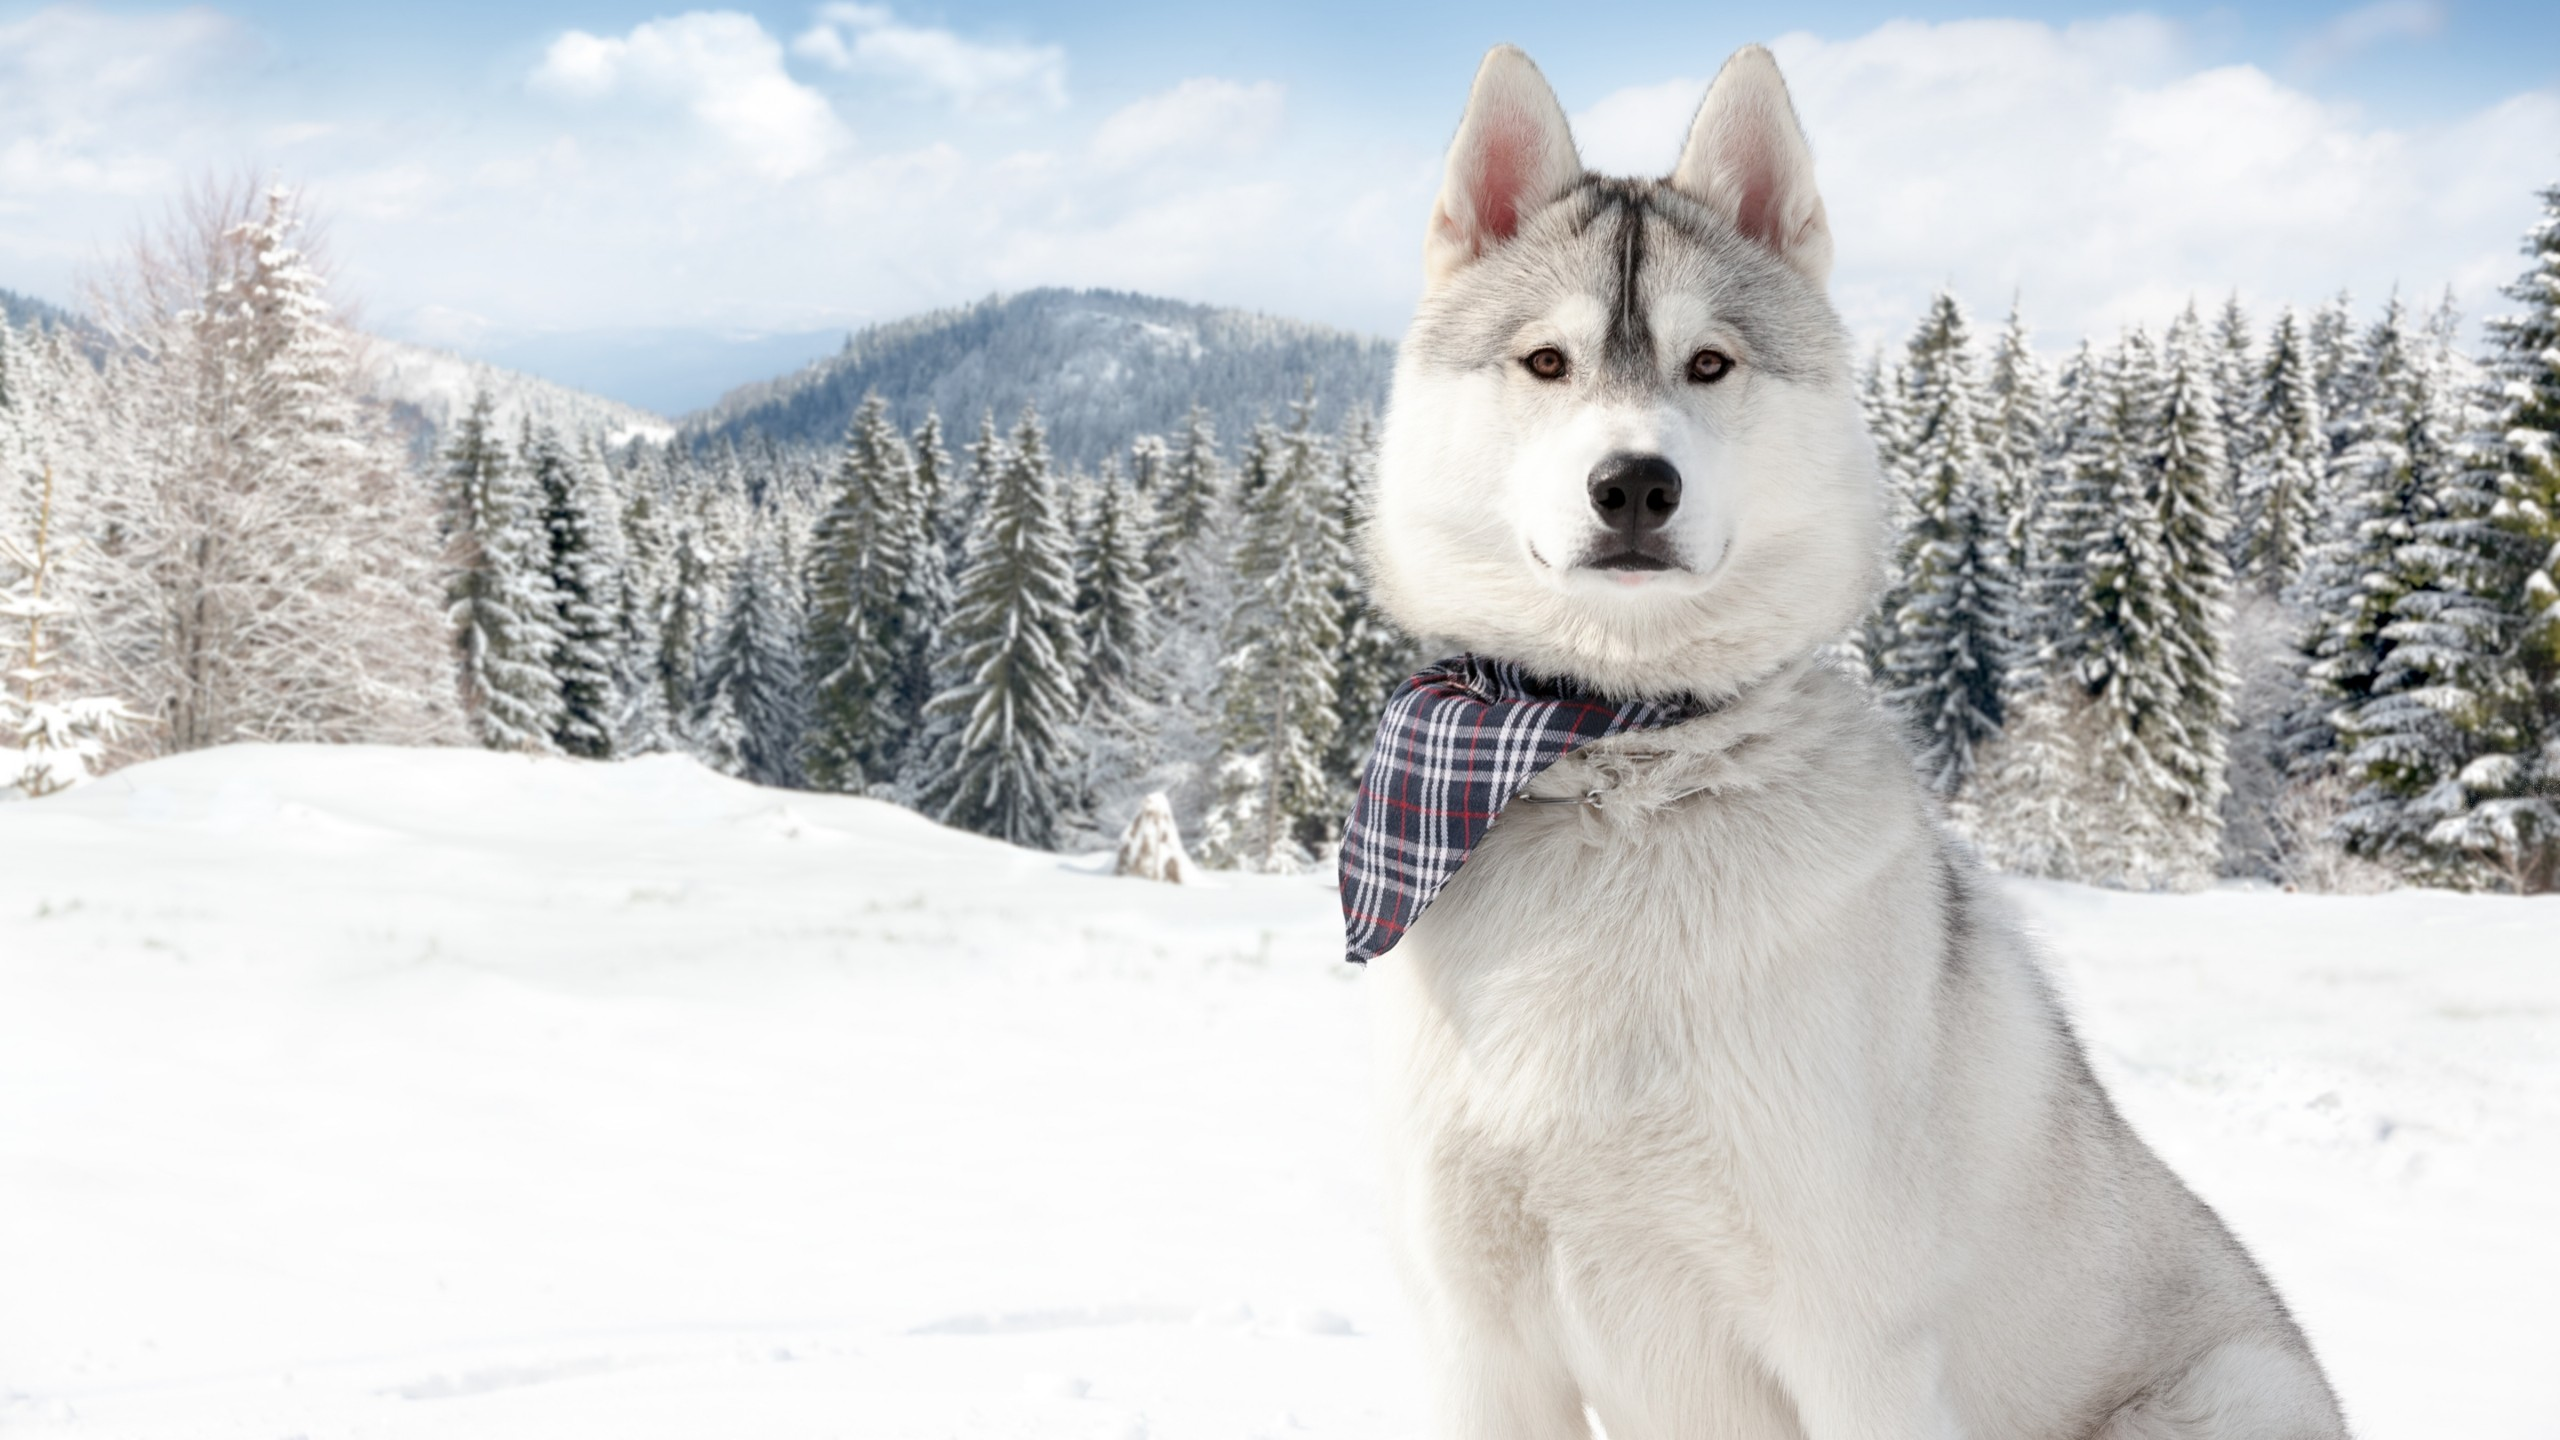 Life Quotes Wallpapers For Facebook Wallpaper Huskies Dog Puppy Snow Forest Winter White